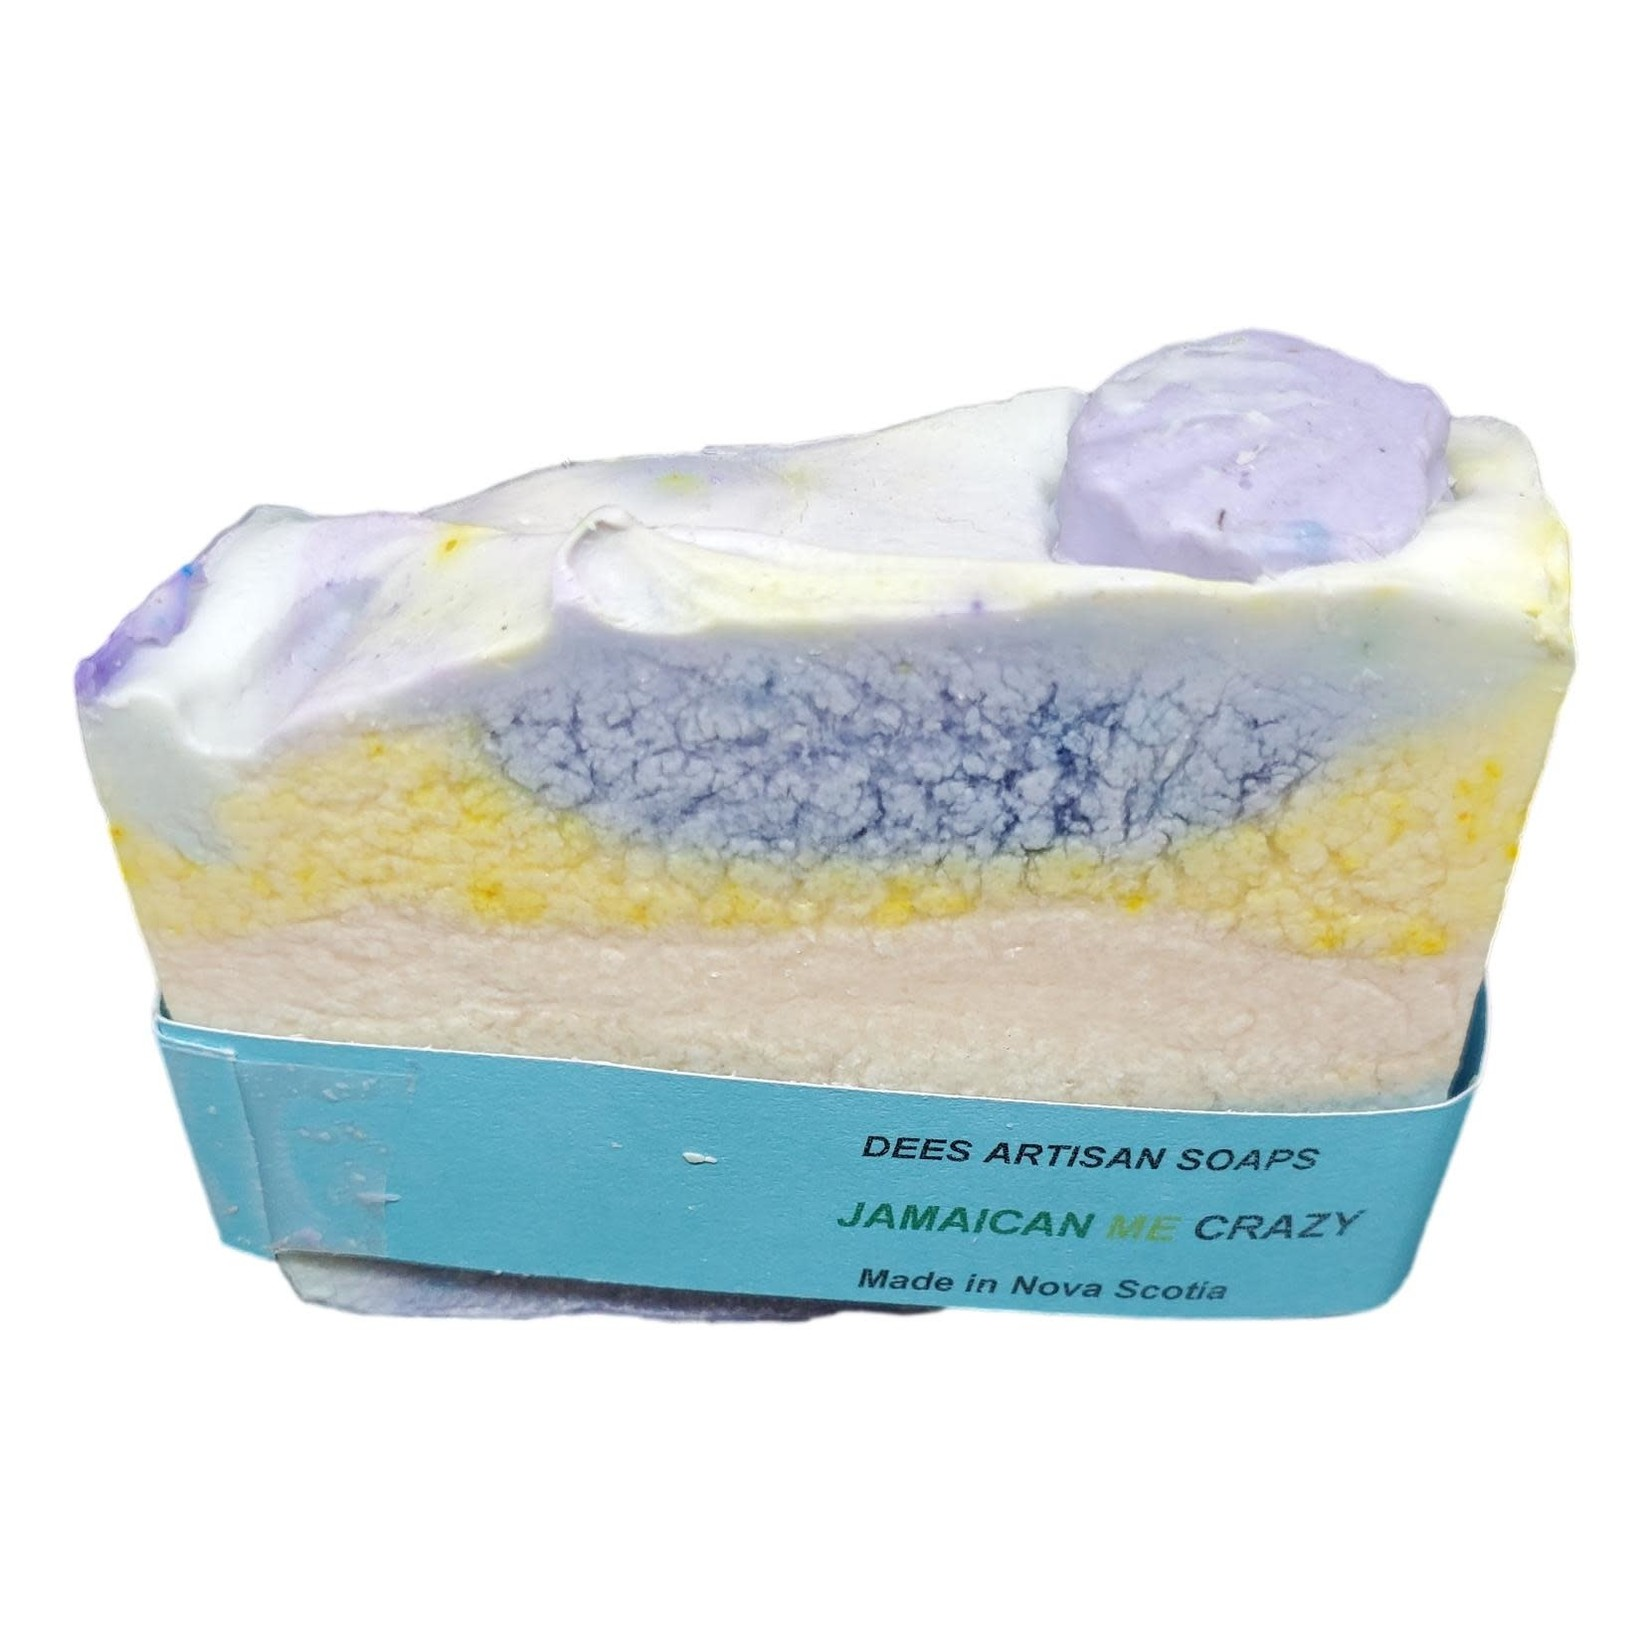 Dee's Artisan Soaps and More Jamaican Me Crazy Soap